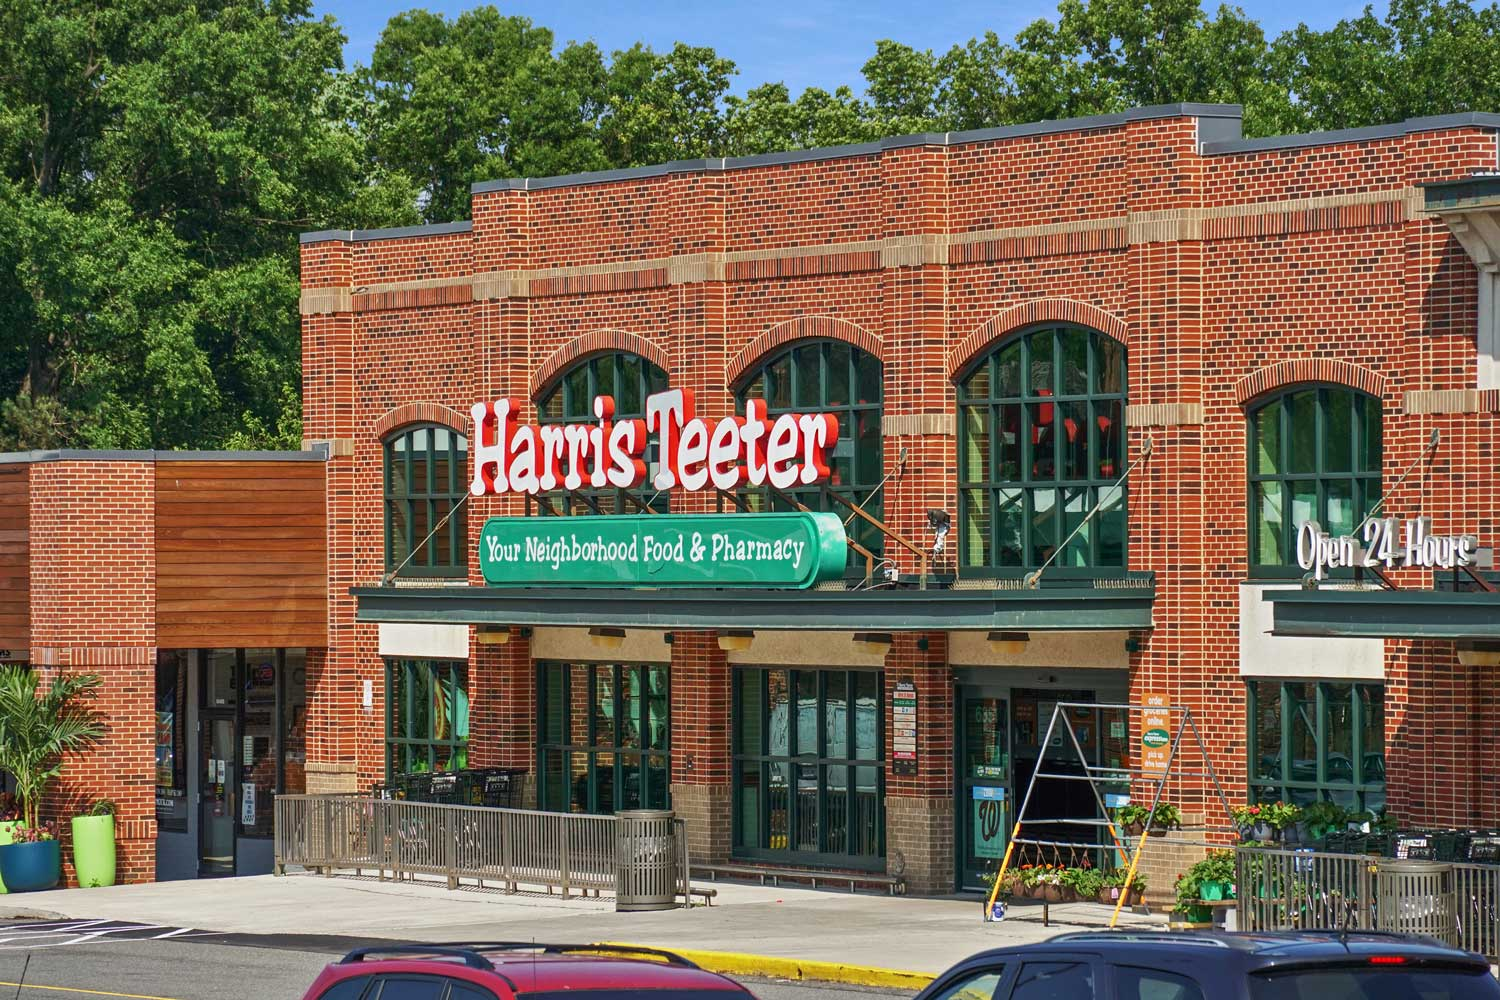 Harris Teeter is 5 minutes from Barcroft View Apartments in Falls Church, VA